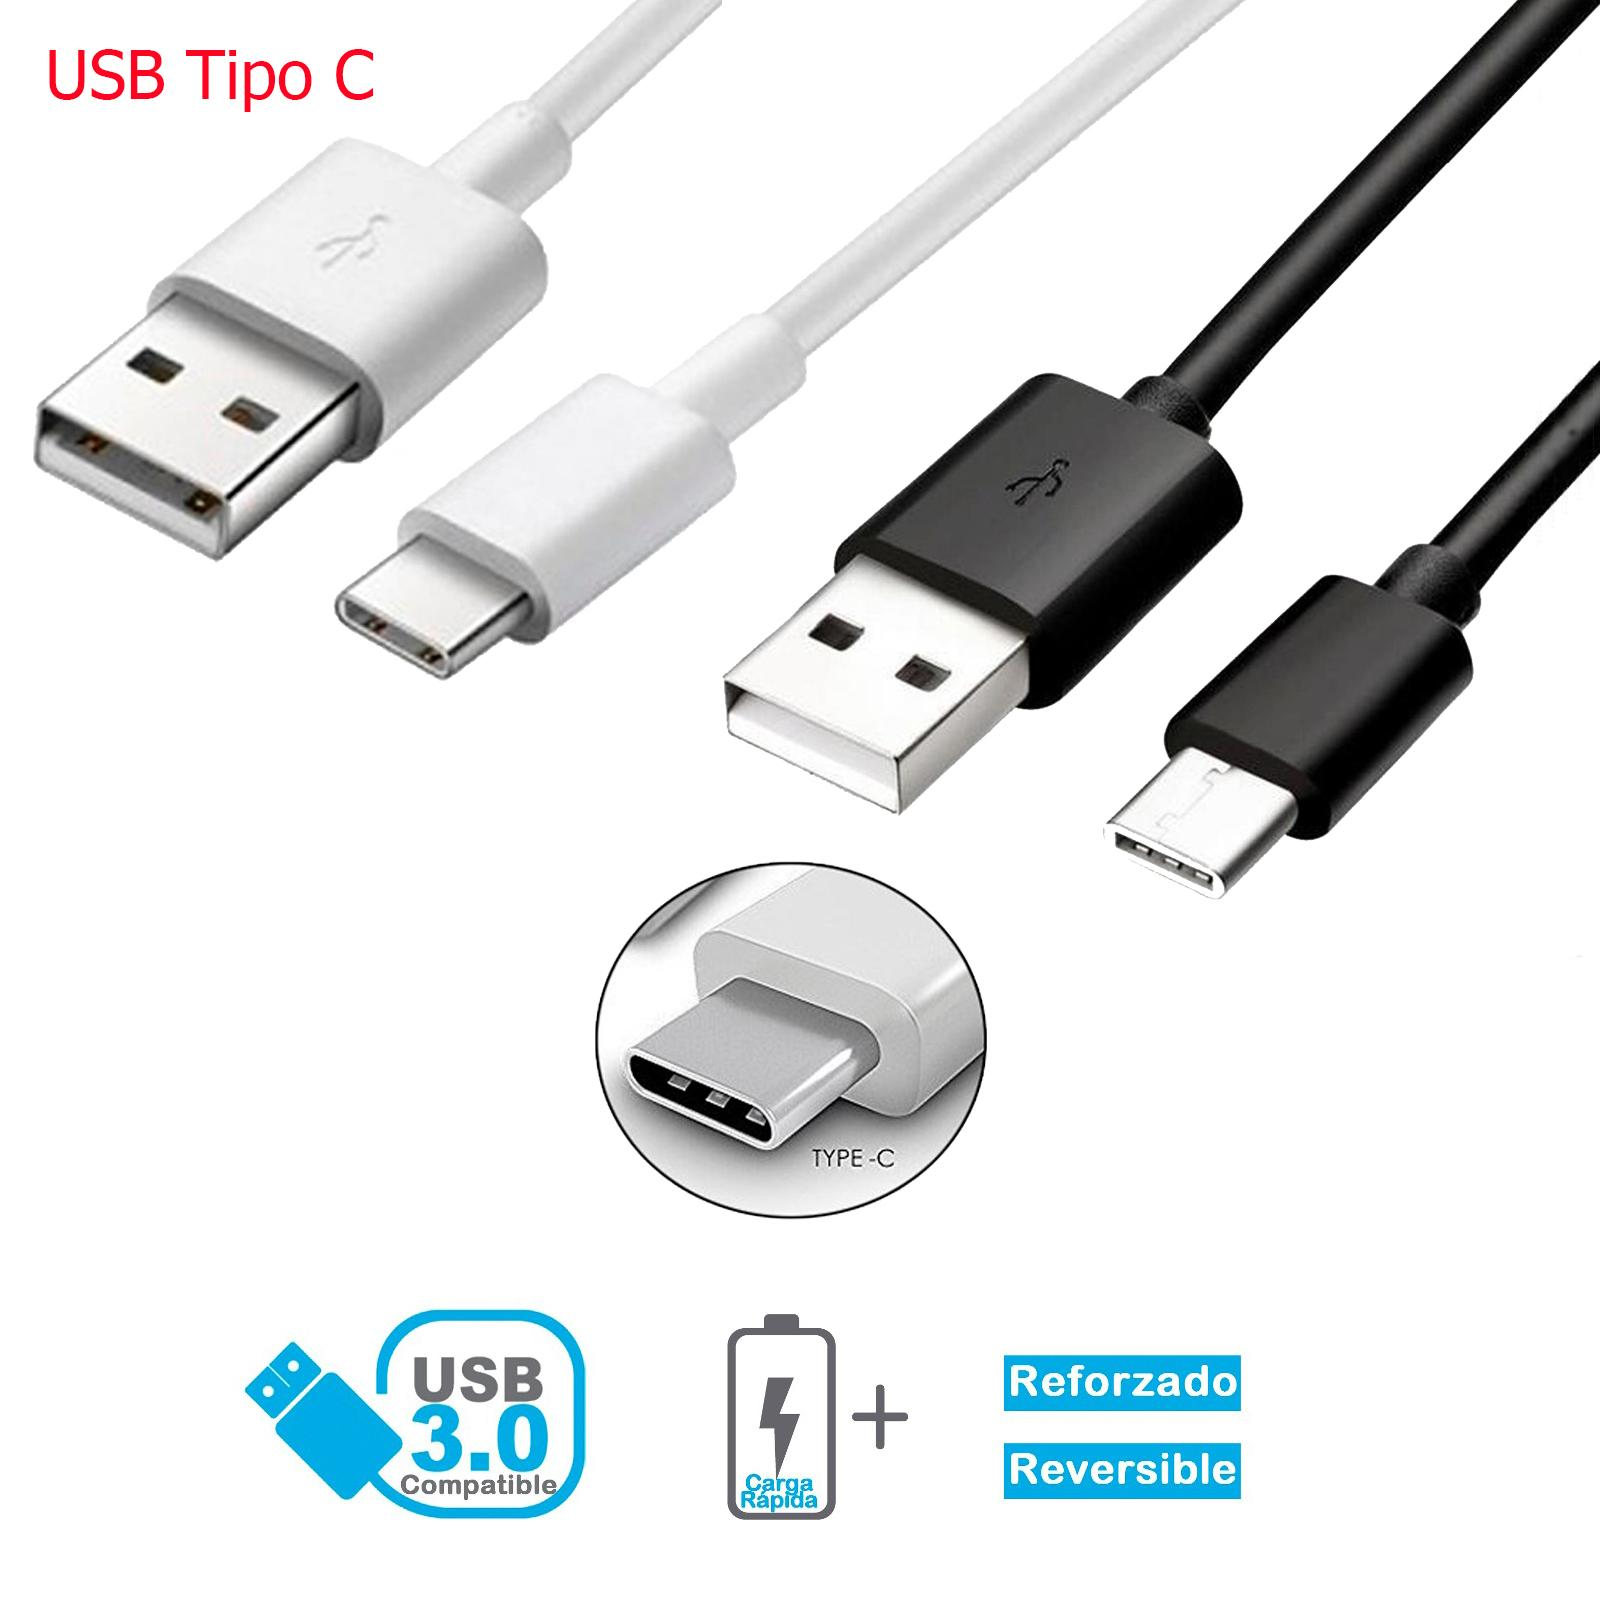 USB Type C Cord For Mobile Xiaomi My Mix 2 Fast Charge And Data 1 Poke Length And 2 Meters